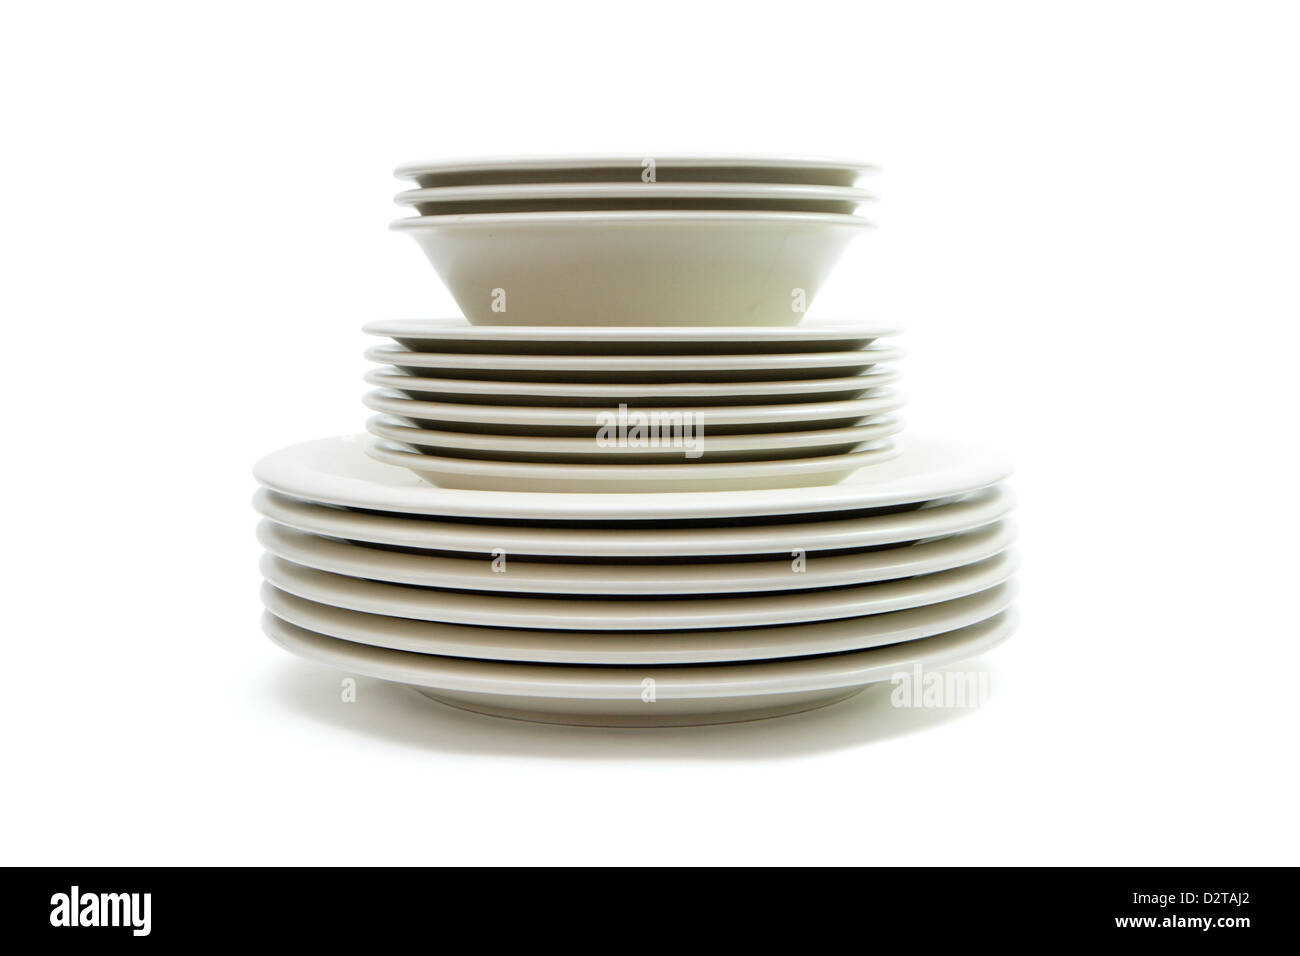 Stack of plain beige dinner plates, soup plates and saucers isolated - Stock Image